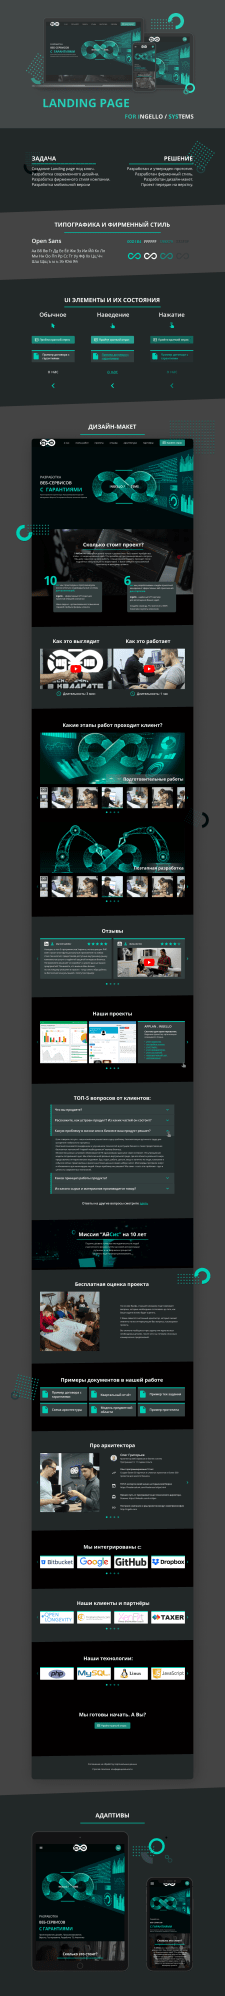 Landing page for Ingello System